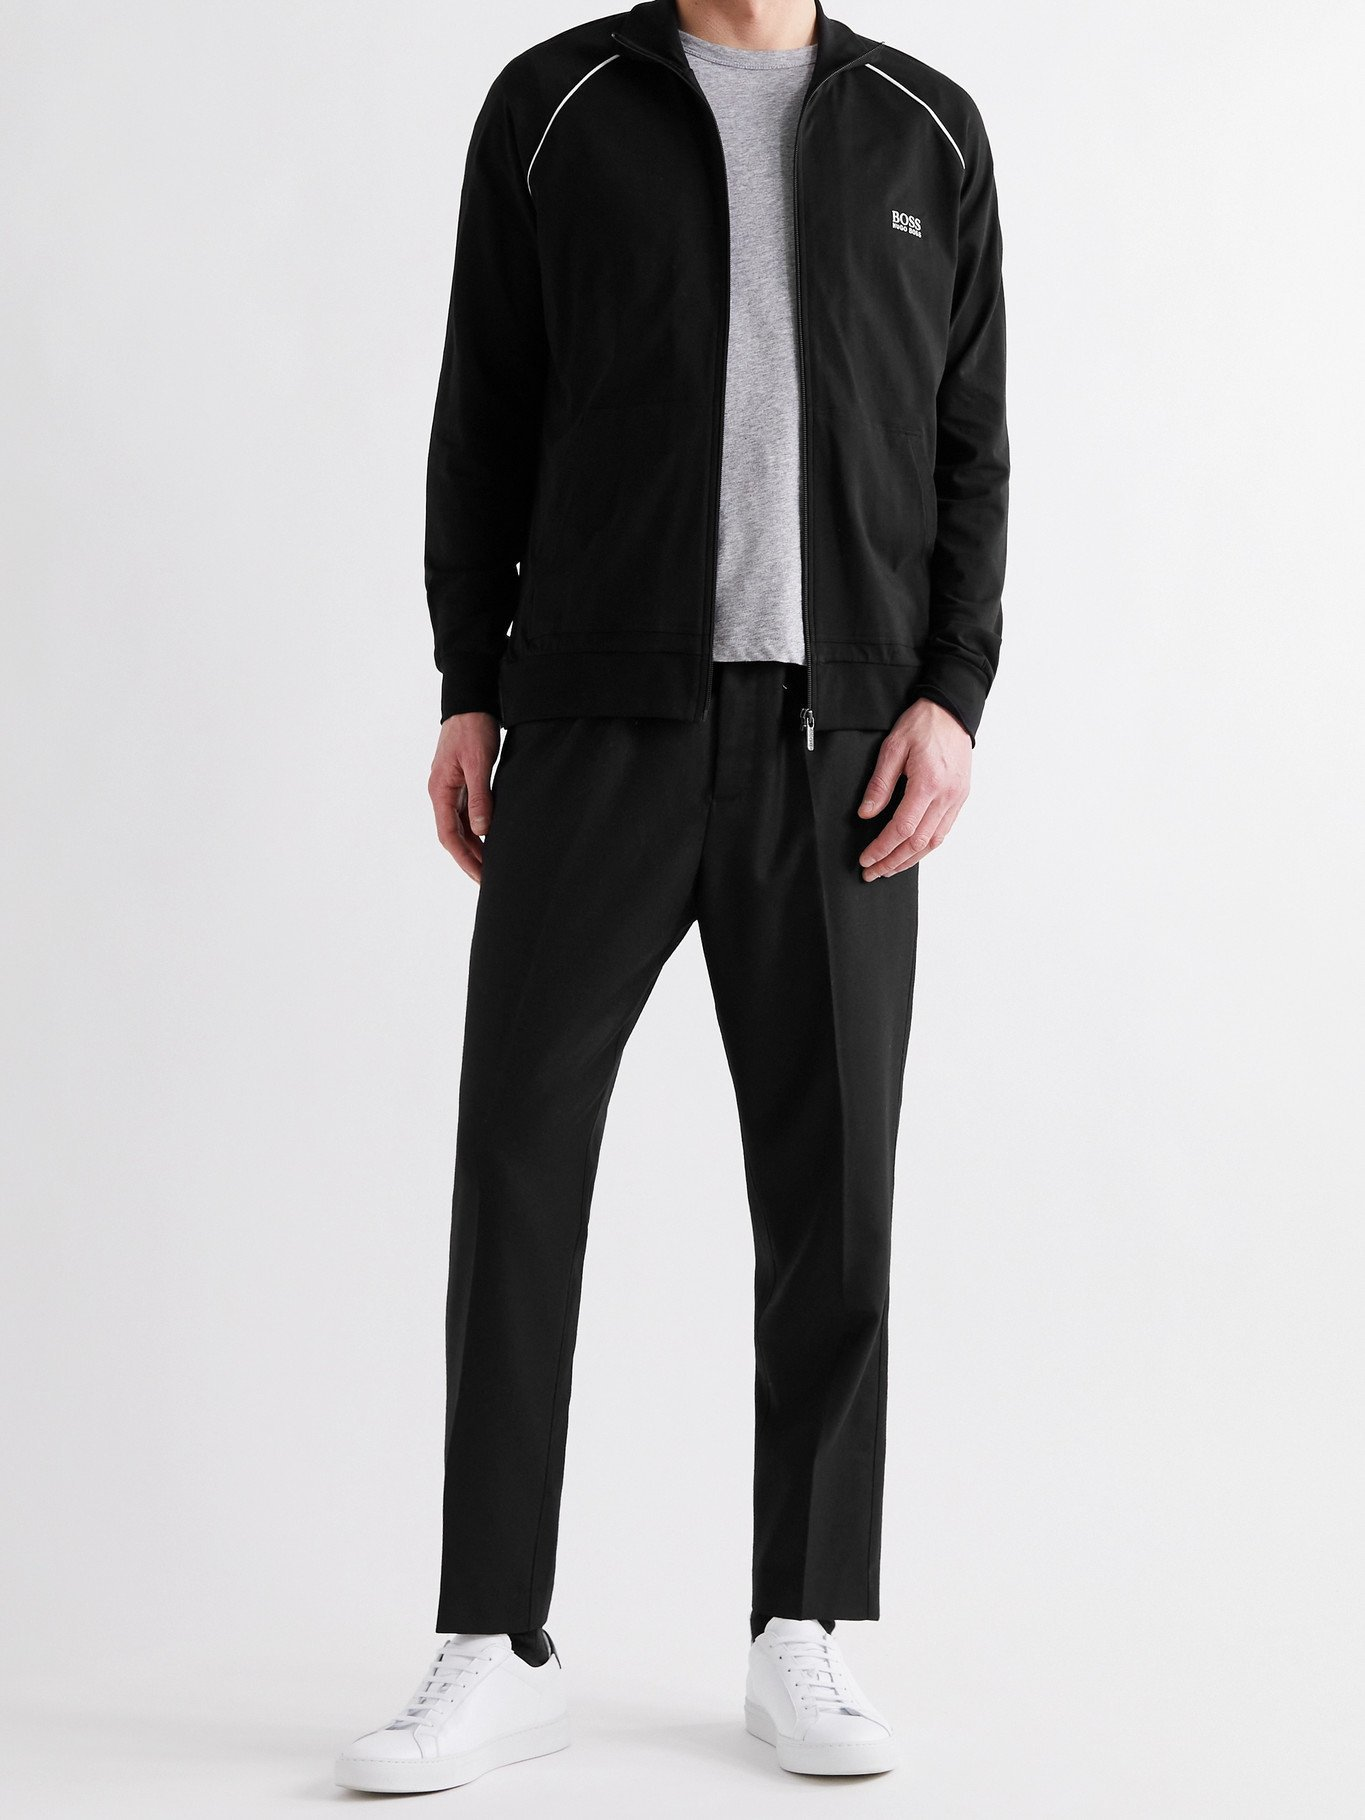 HUGO BOSS - Piped Logo-Embroidered Stretch-Cotton Jersey Track Jacket - Black - S